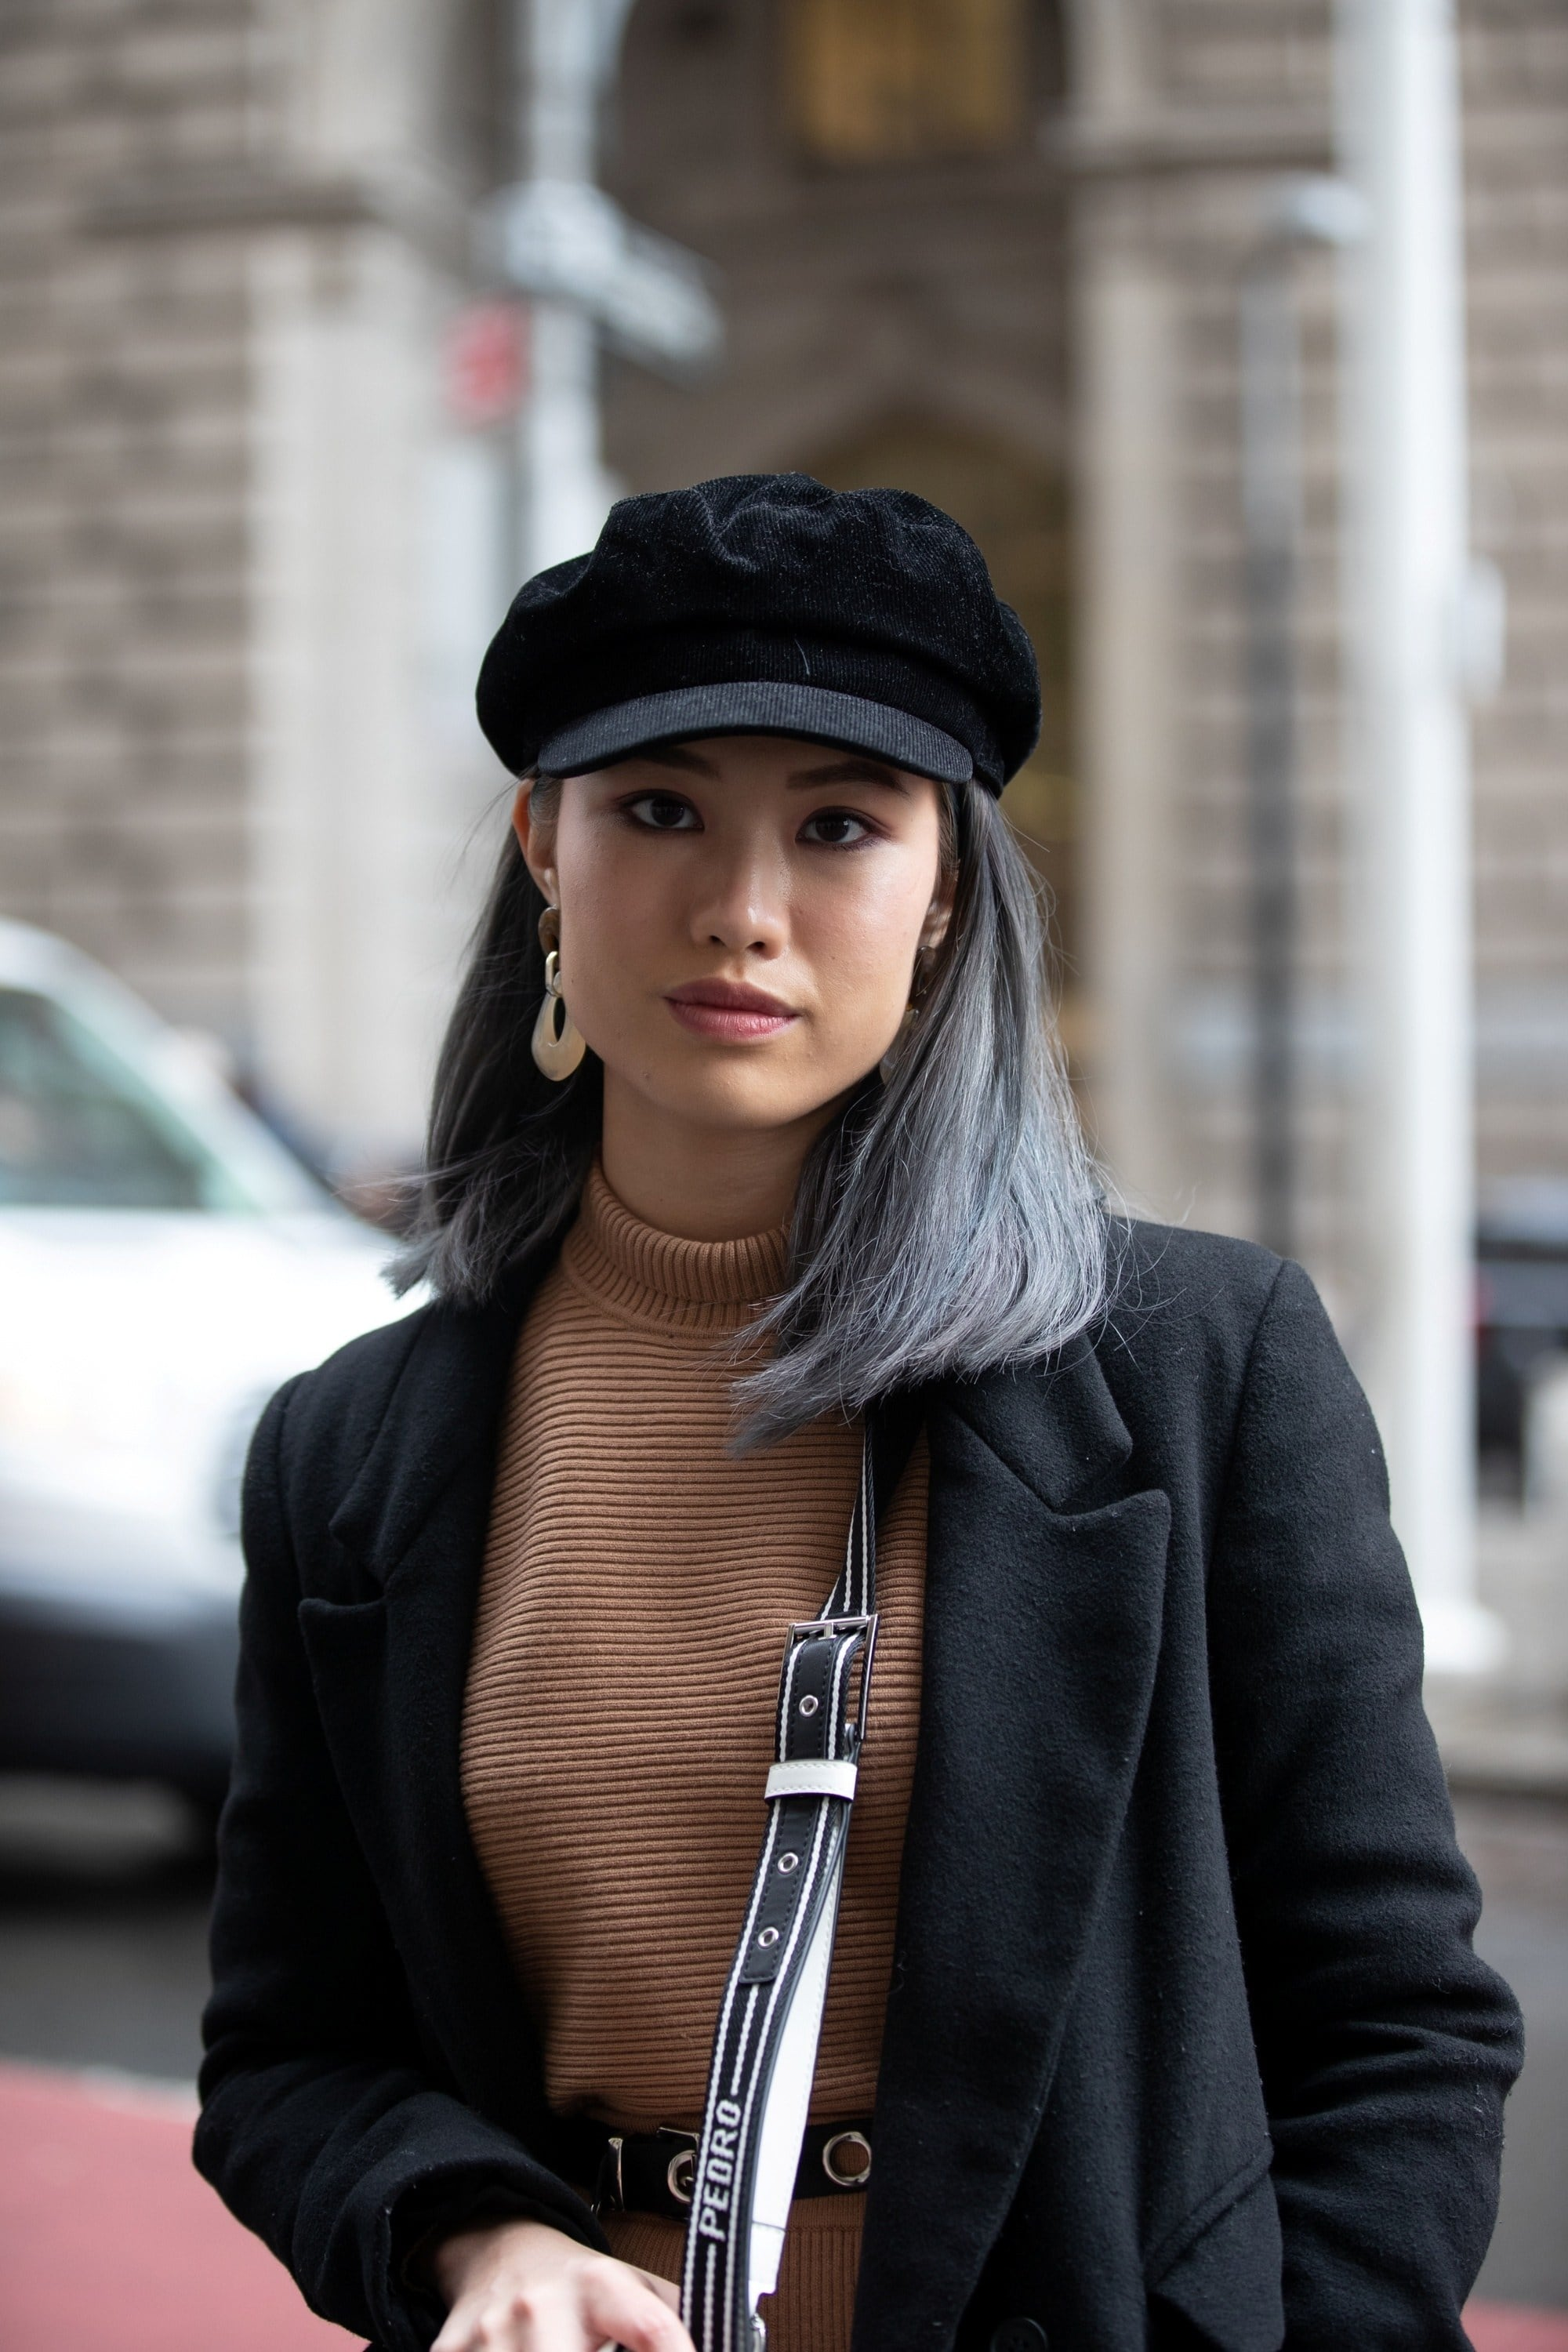 Street style hair inspiration: Woman with dip-dyed ash gray hair wearing a black hat and black jacket outdoors